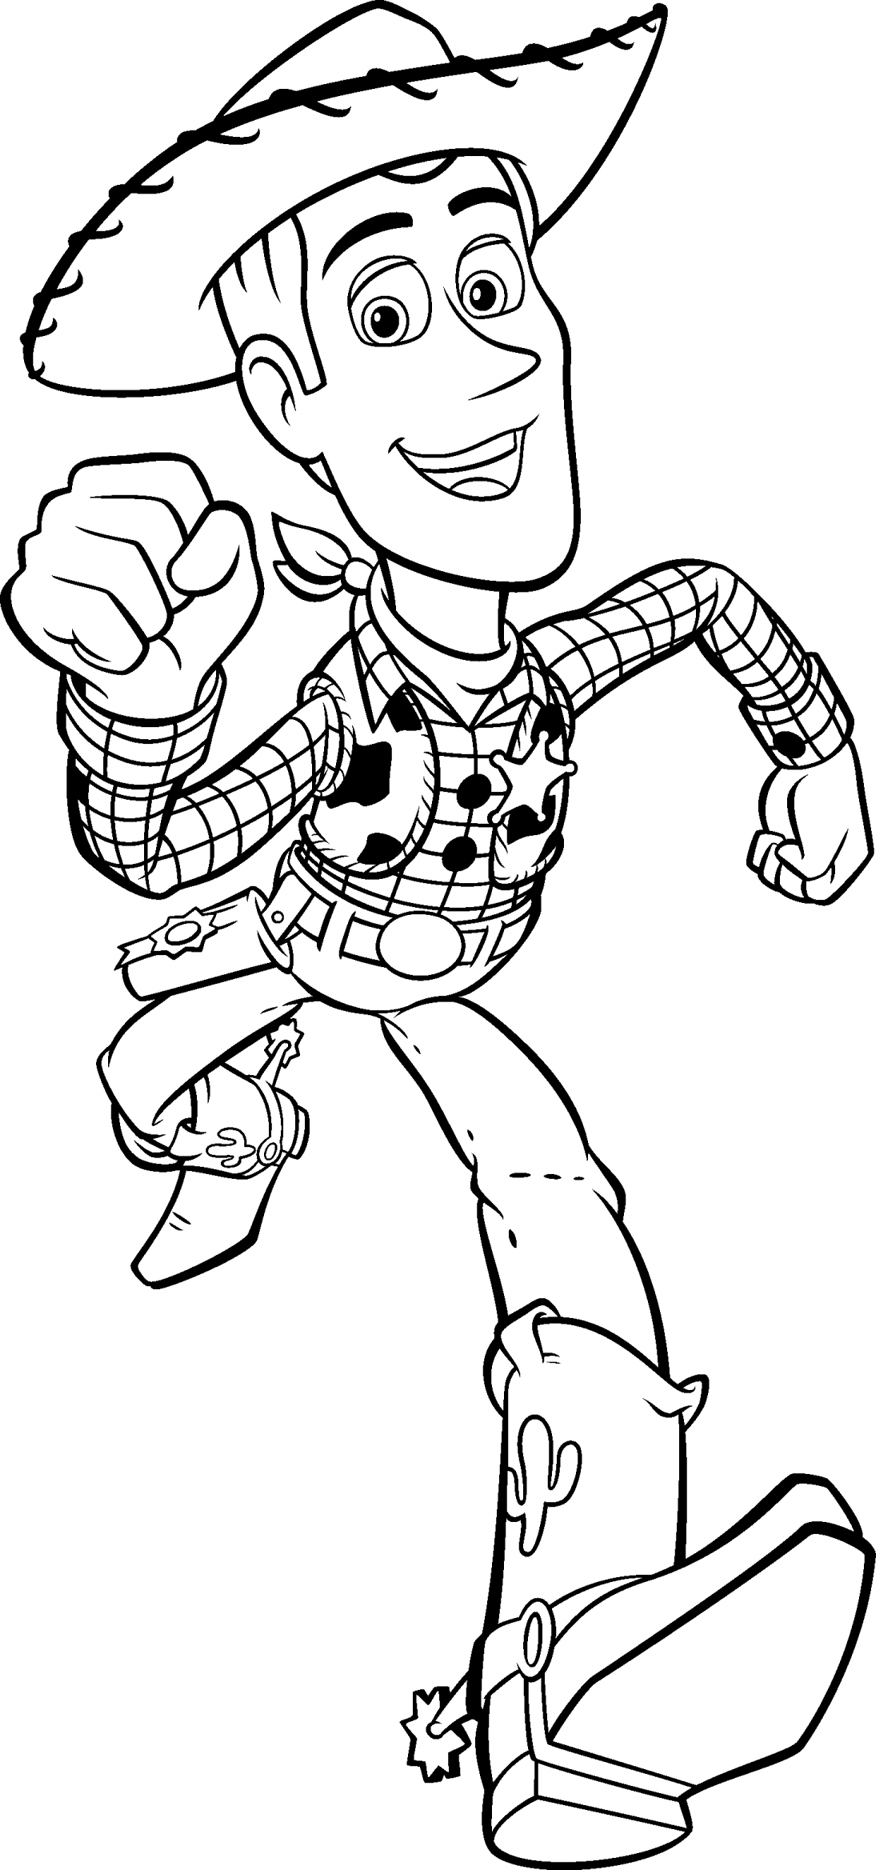 Free printable toy story coloring pages for kids - Disney coloring kids ...